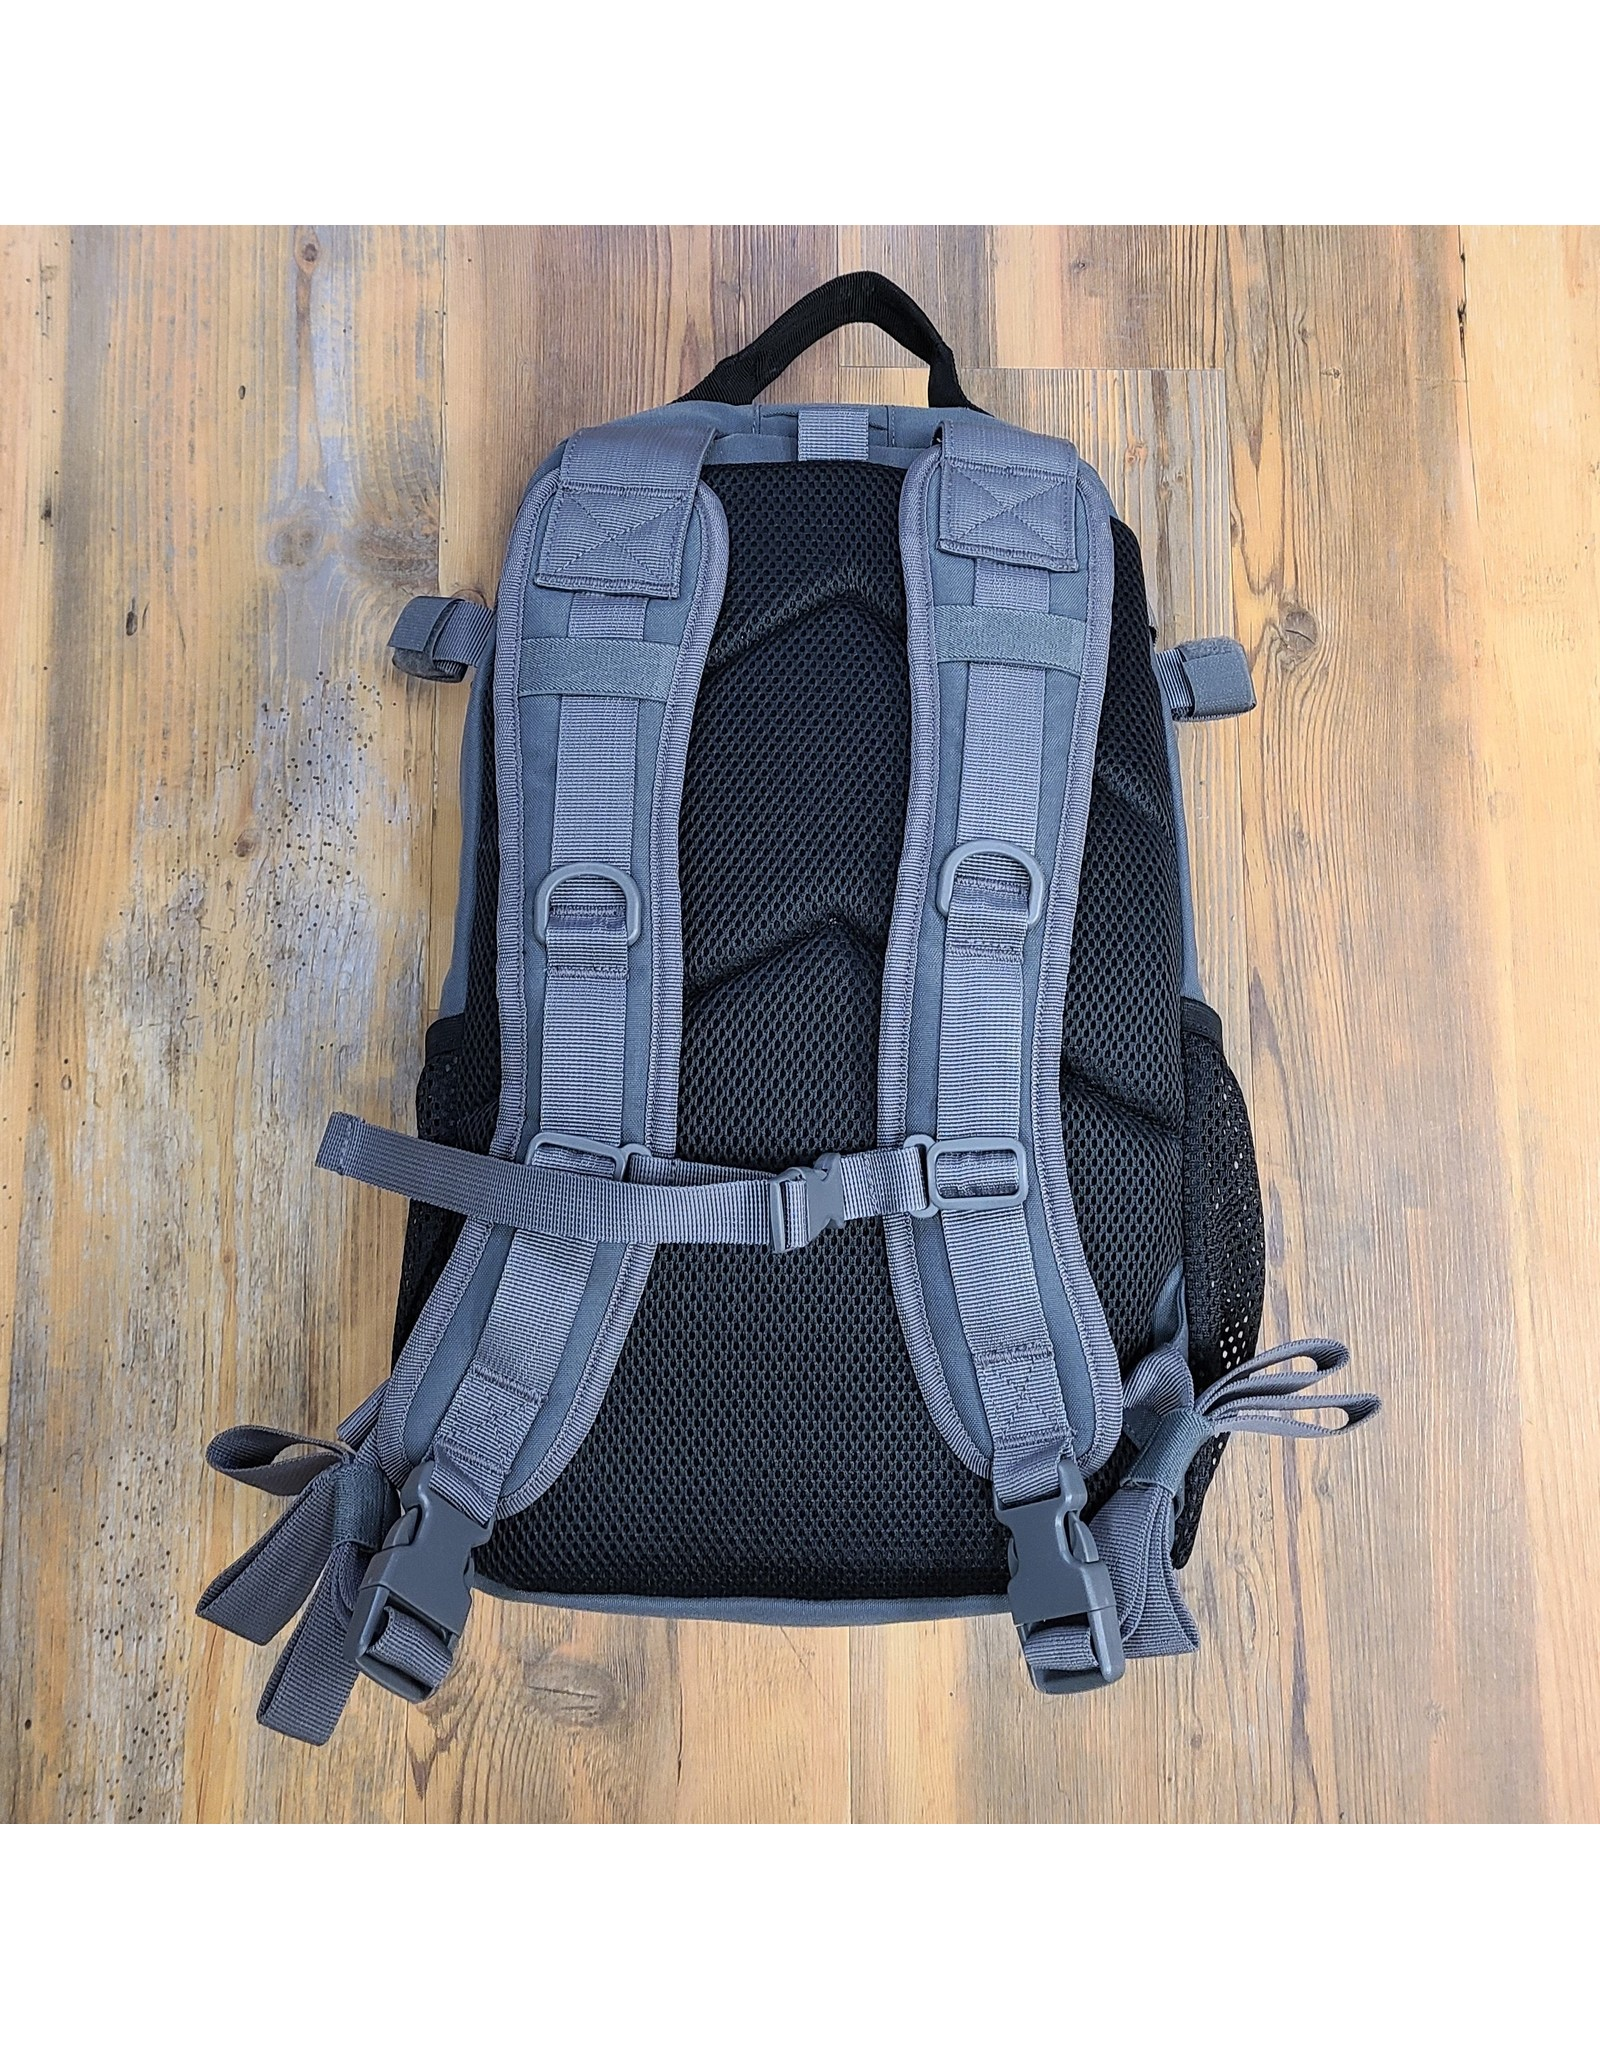 MAXTACS HYBRID RECON PACK -GRY/BLK